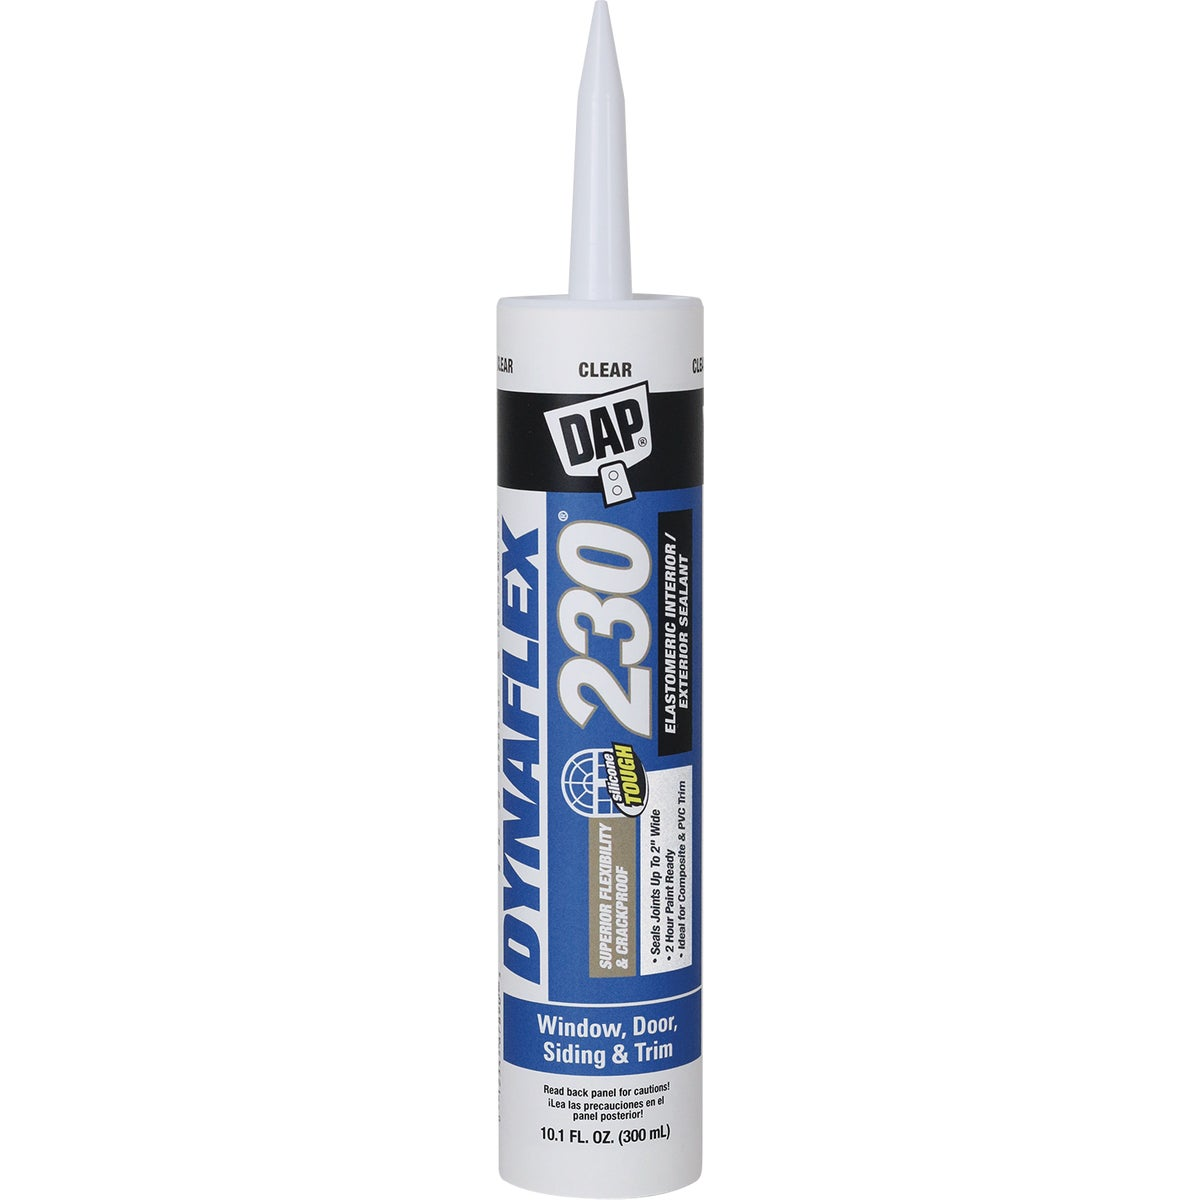 CLR DYNAFLEX LTX SEALANT - 18304 by Dap Inc